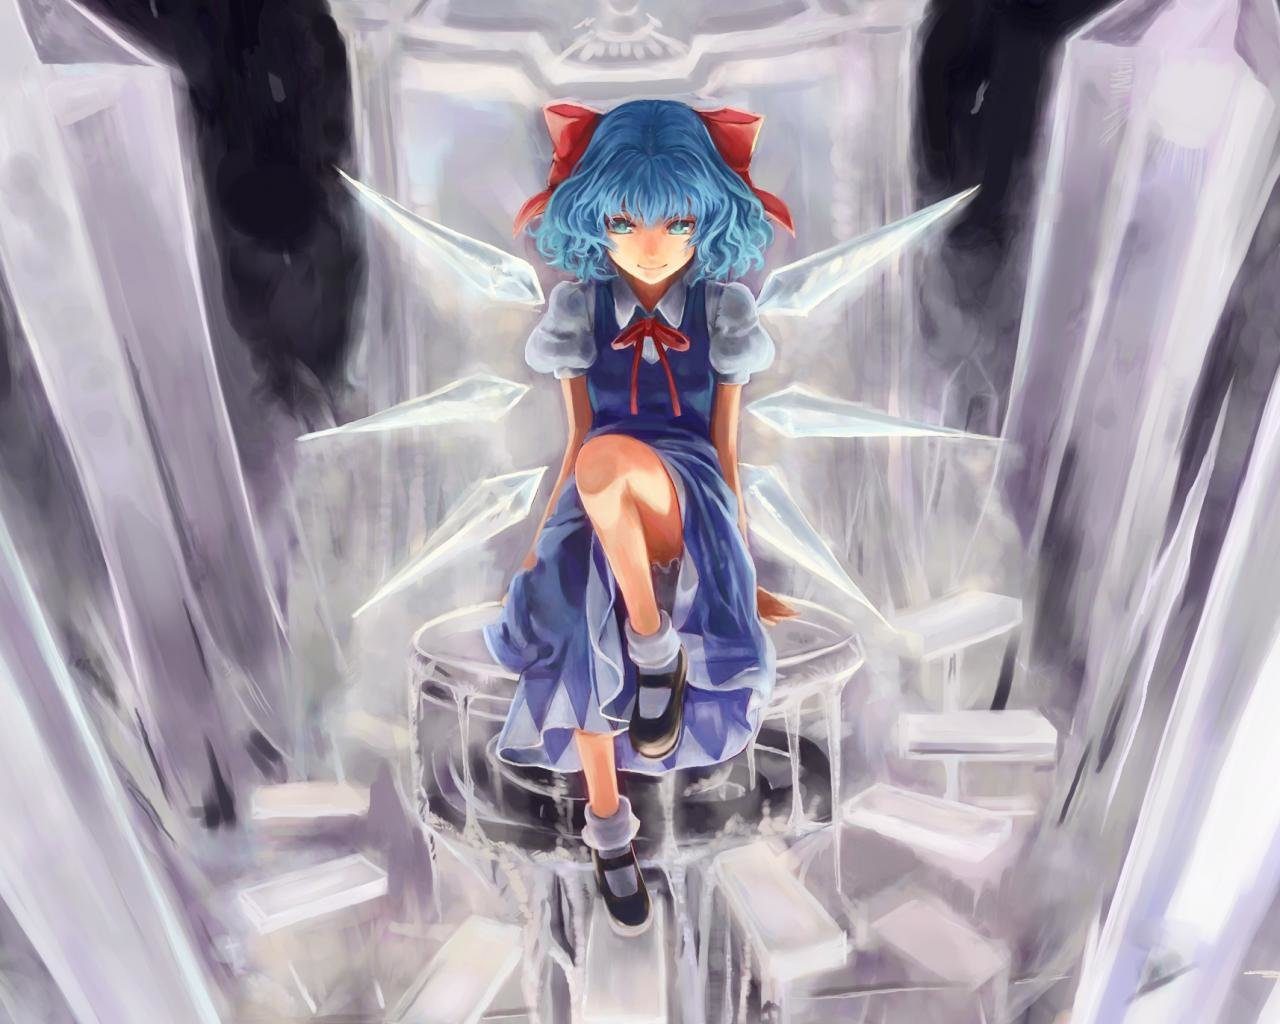 Awesome Cirno (Touhou) free wallpaper ID:225307 for hd 1280x1024 PC